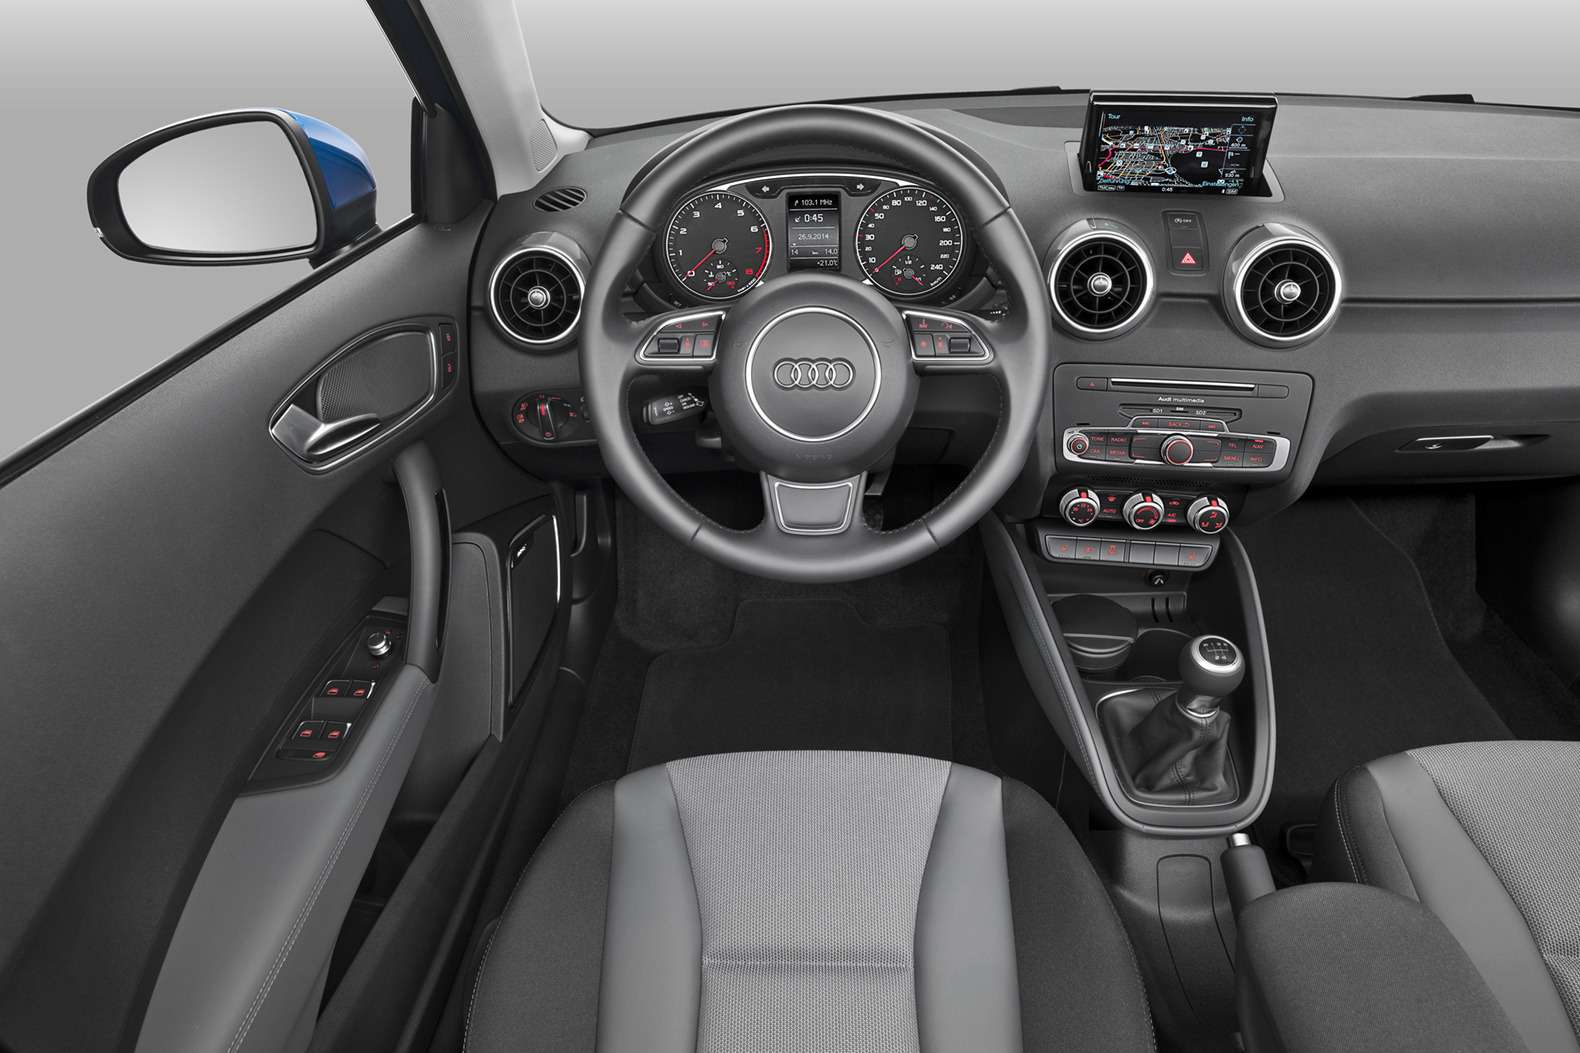 audi-sd3rdfcdc-a1-facelift-34rfd-153